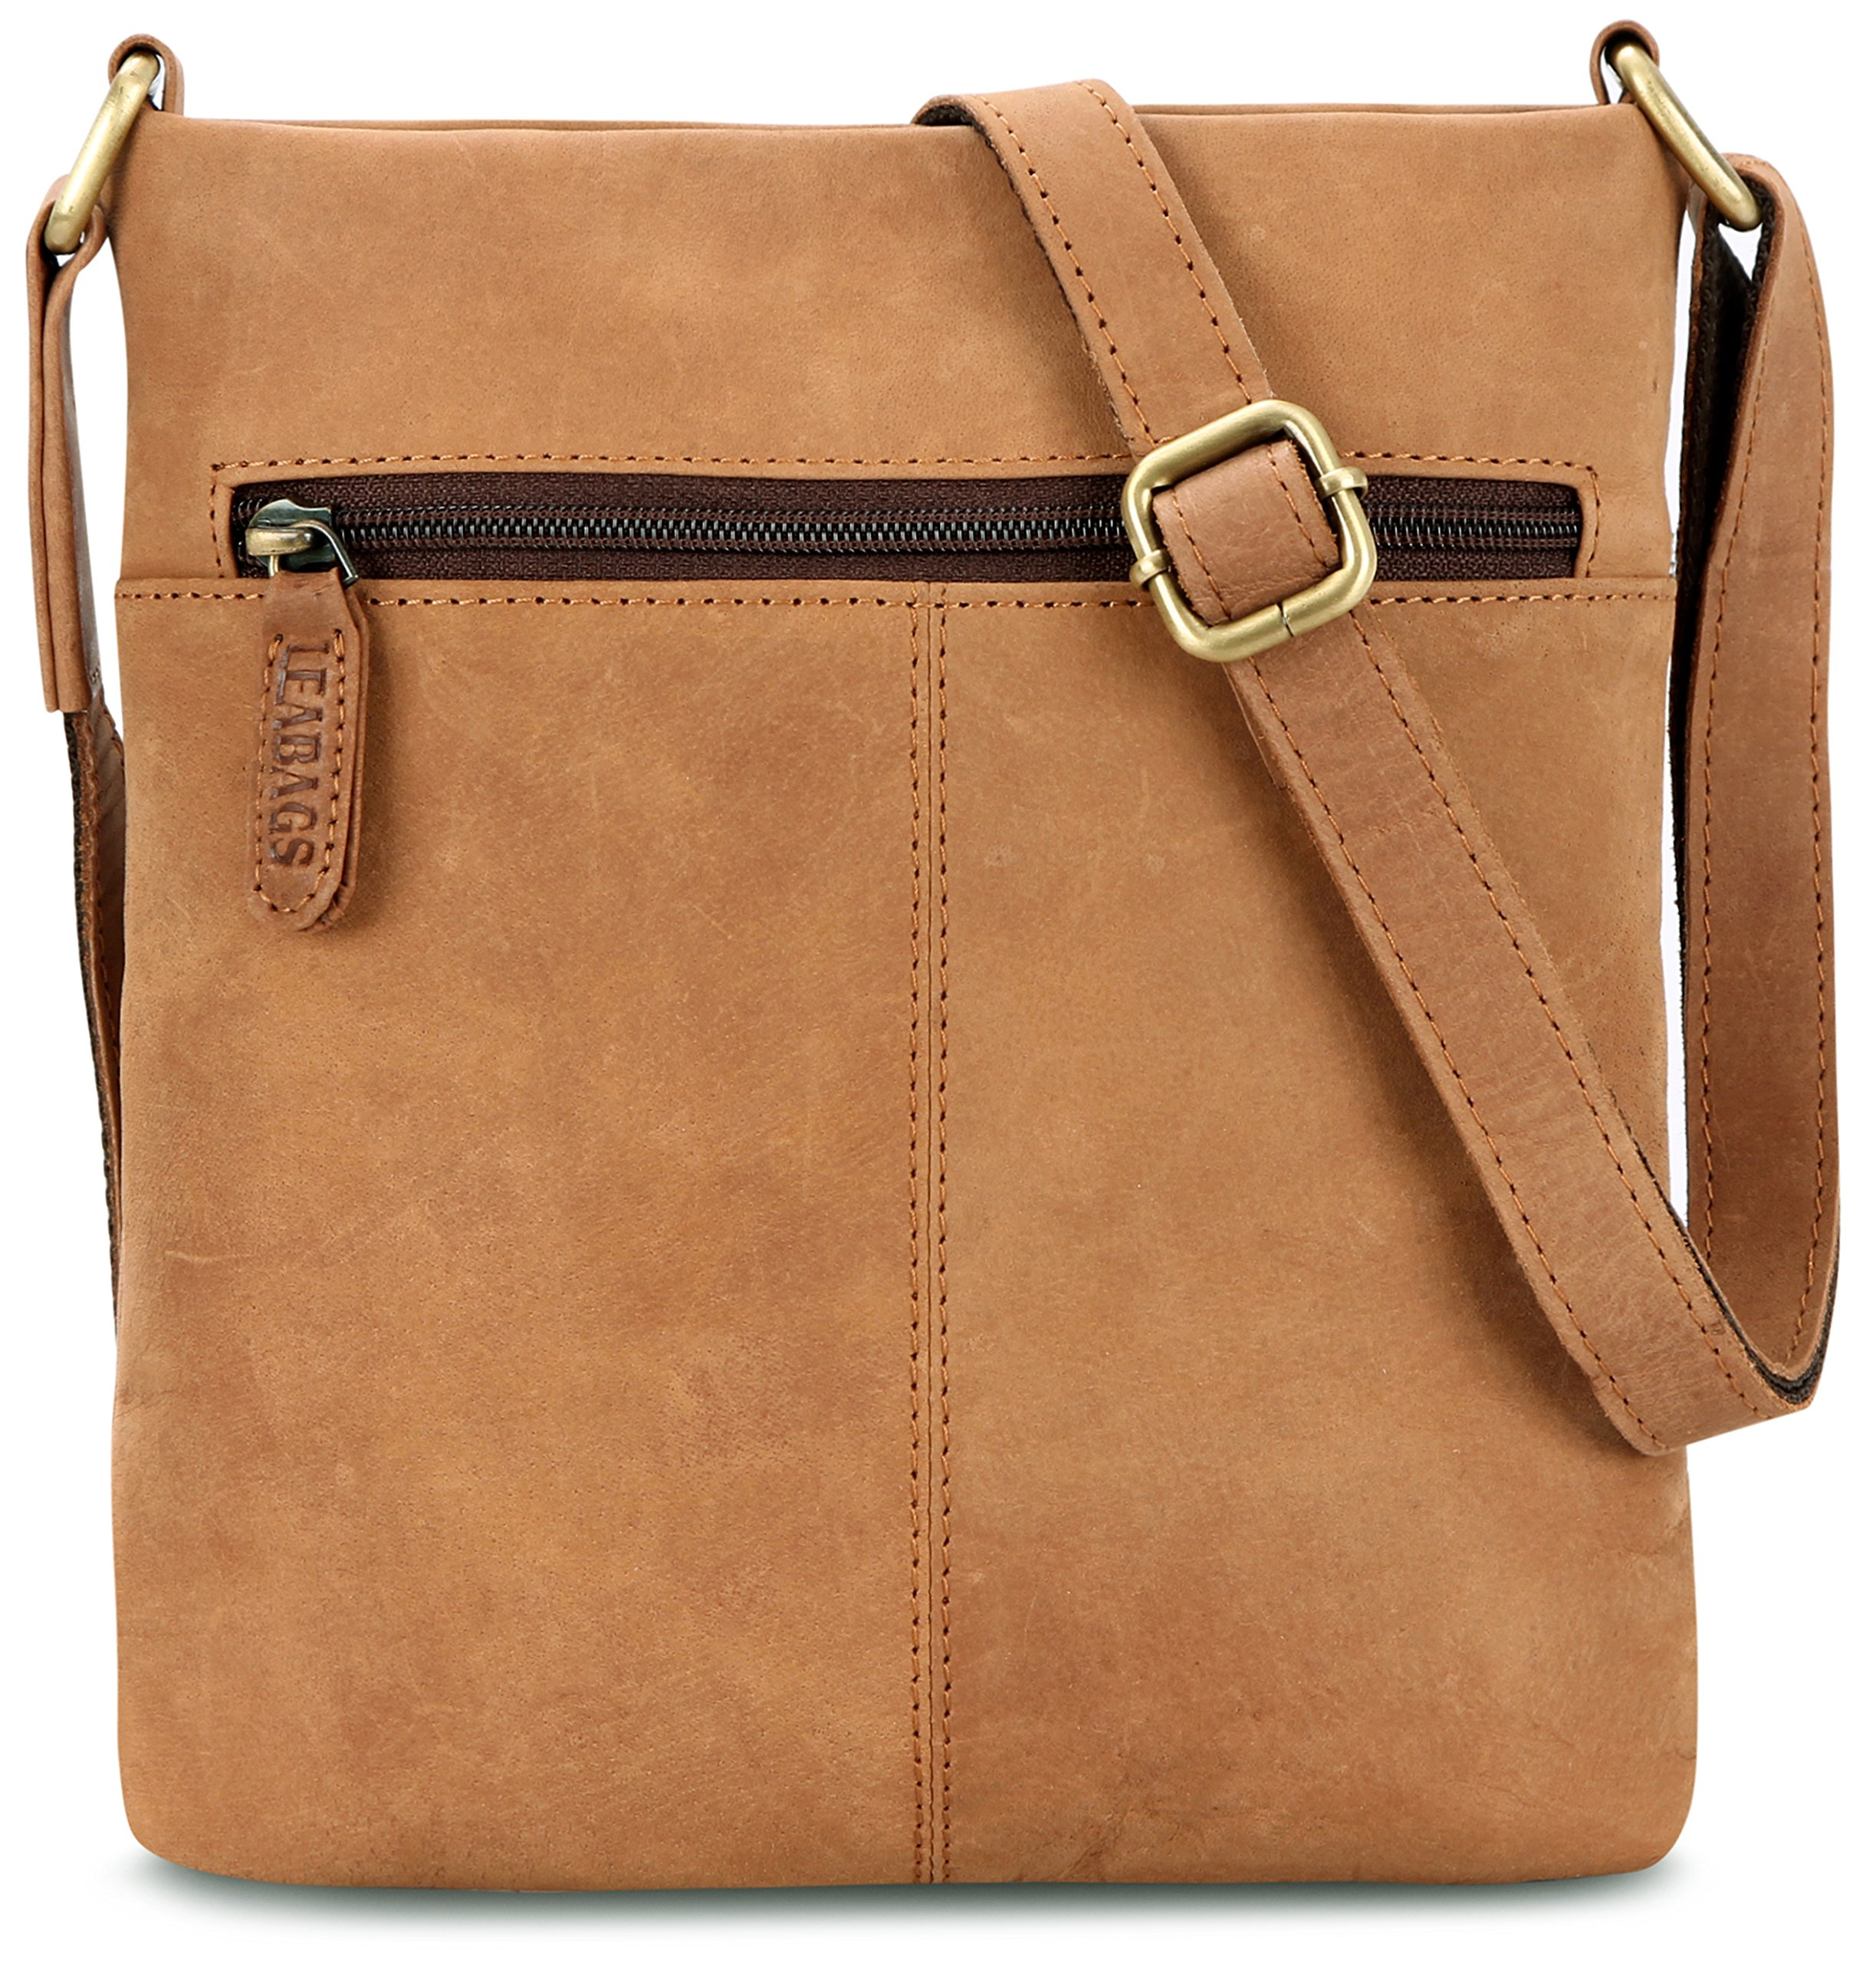 LEABAGS Seattle genuine buffalo leather crossbody bag in vintage style - Brown by LEABAGS (Image #3)